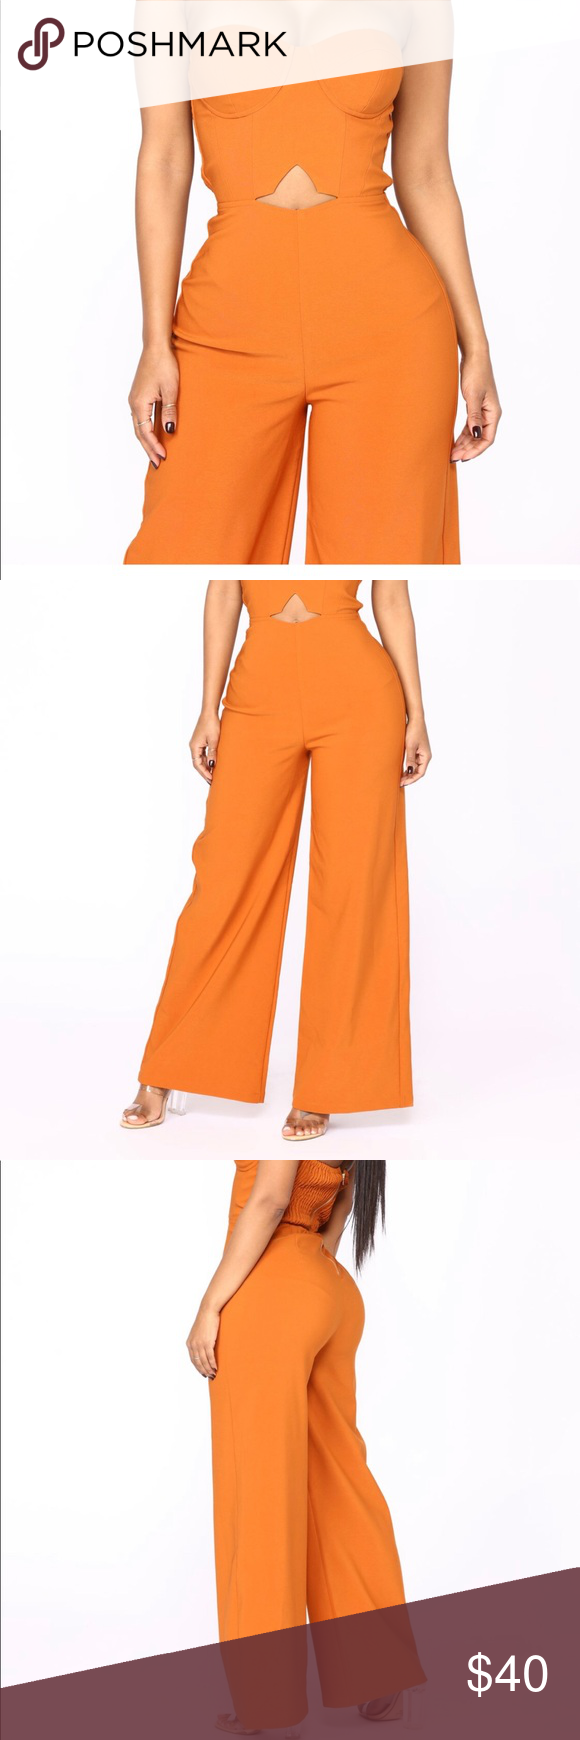 b1036af34f9a Calm and Collected Strapless Jumpsuit Available In Rust Strapless Jumpsuit  Padded Back Zipper Smocked Back Self